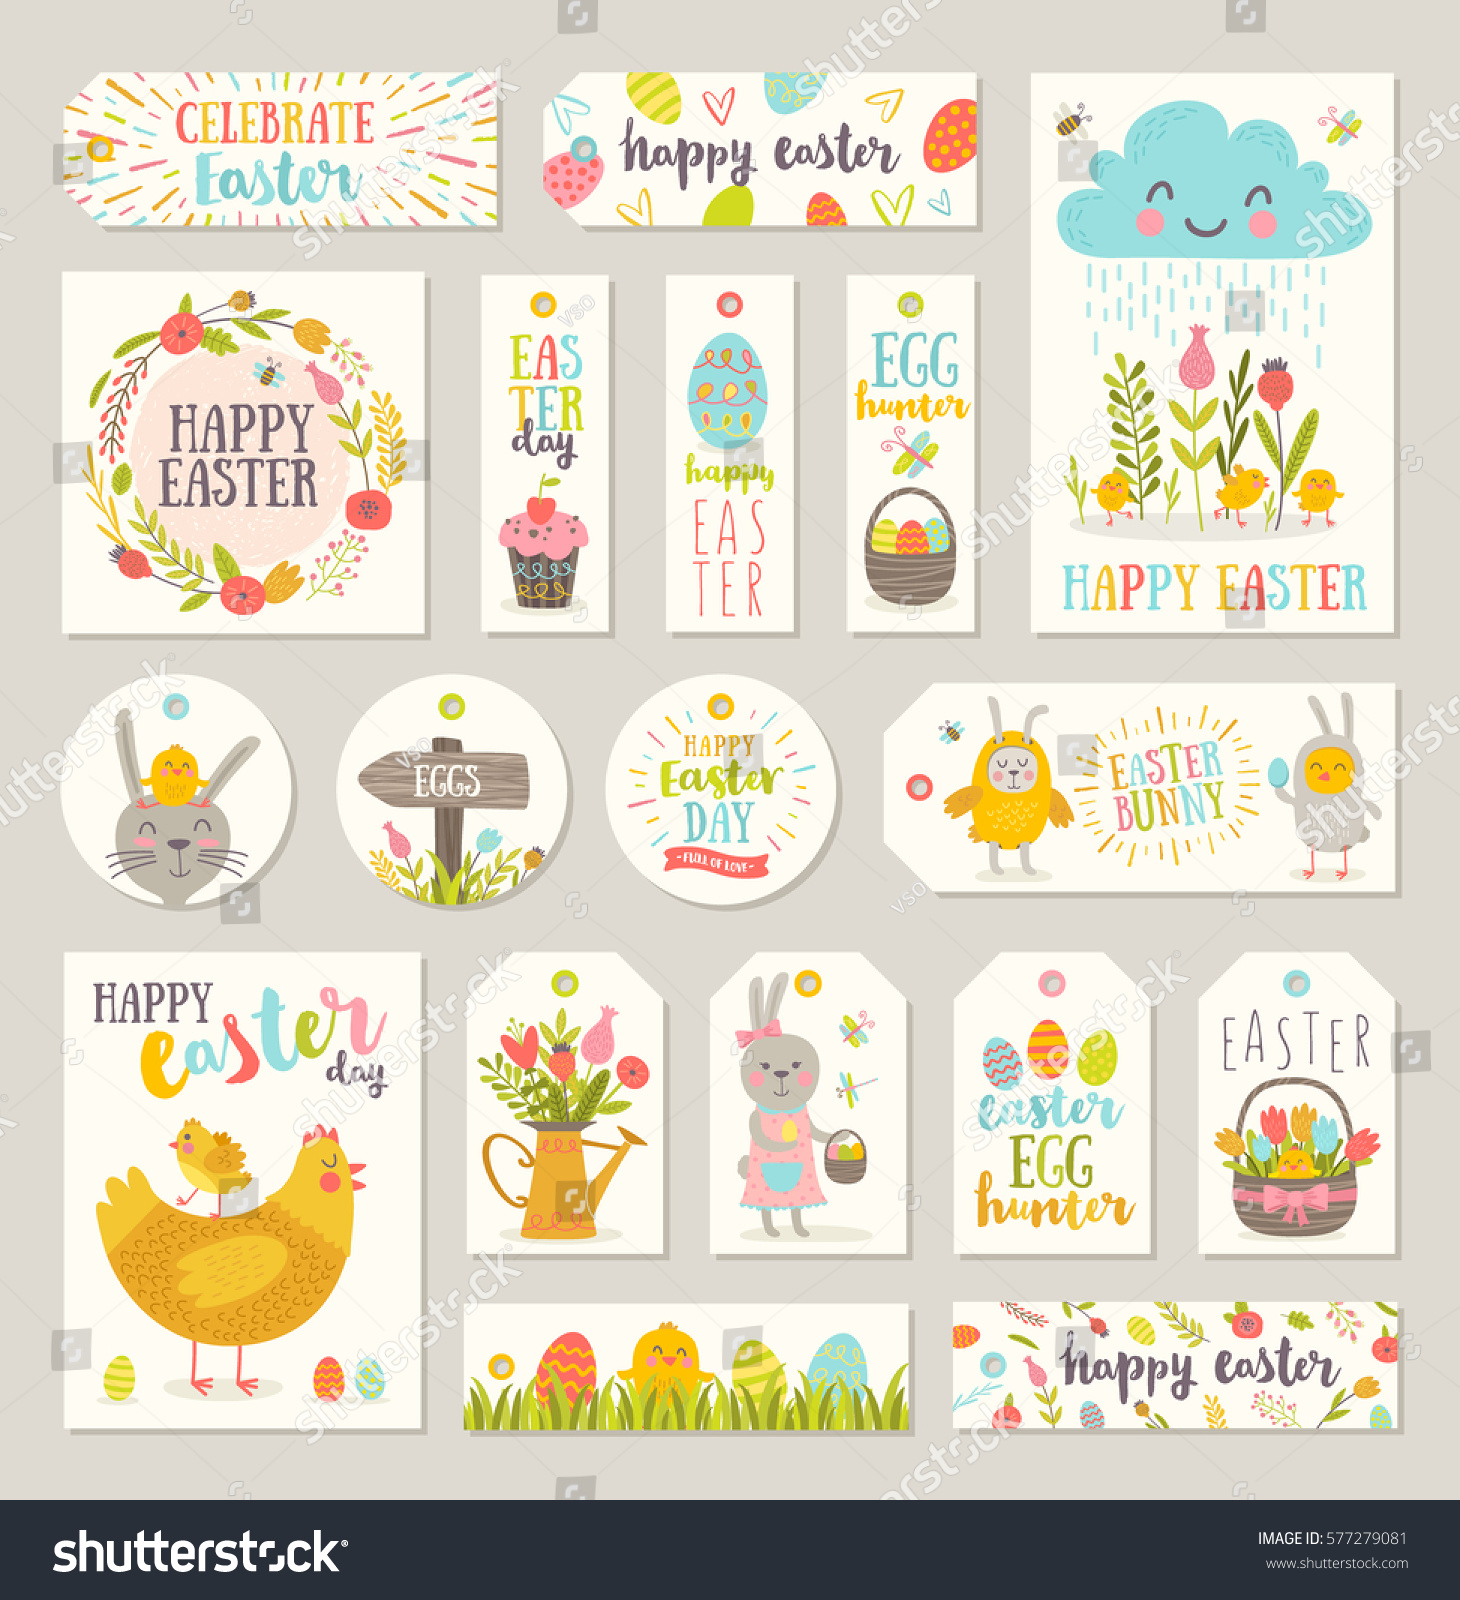 Set easter gift tags labels cute stock vector 577279081 shutterstock set of easter gift tags and labels with cute cartoon characters and type design easter negle Gallery